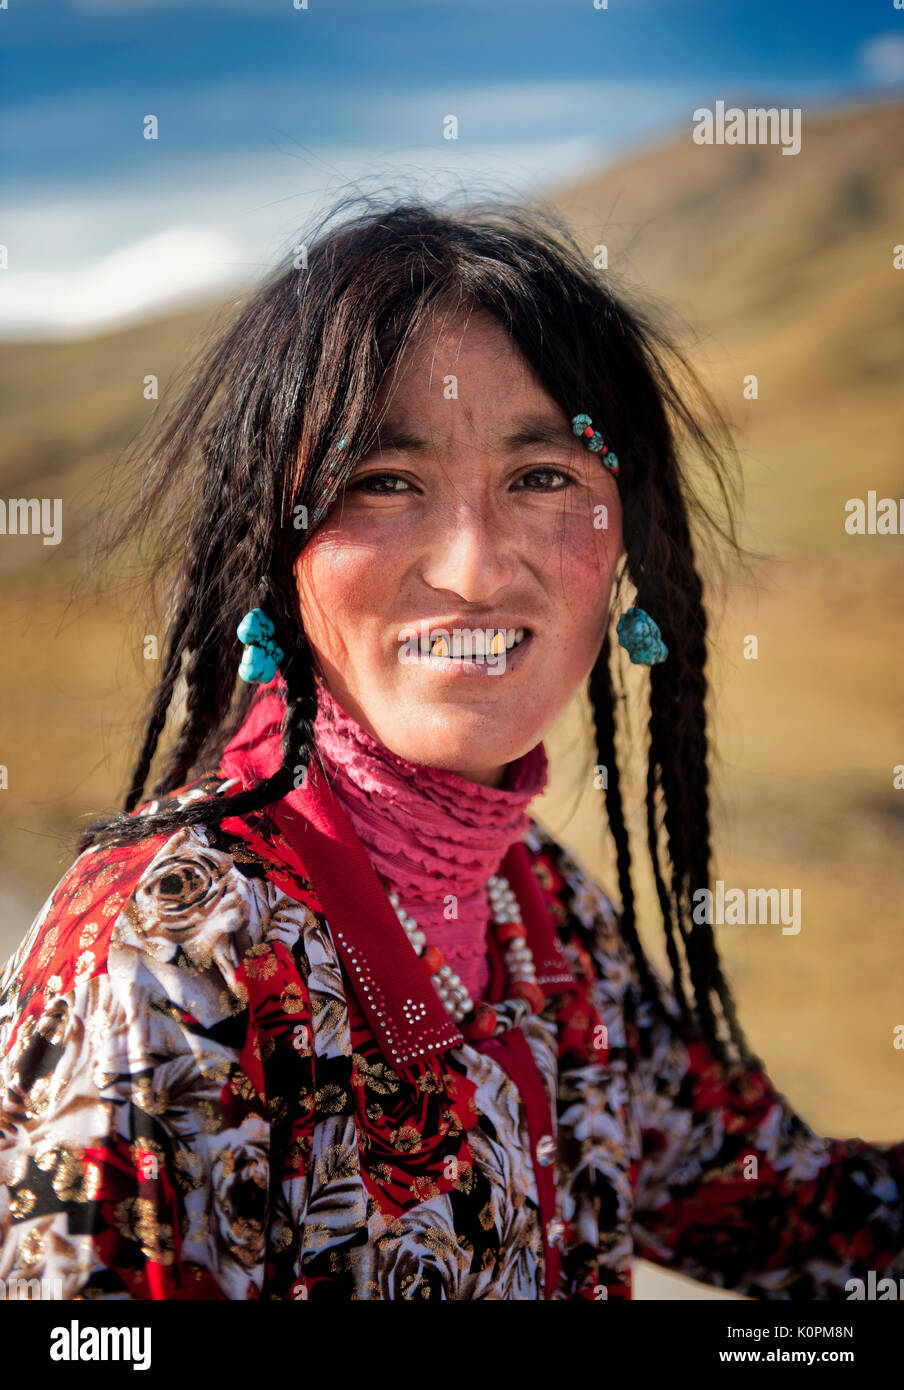 A Tibetan young woman wearing the traditional accessories typical of her ethnic group as well as her canines covered in gold, Remote Tibetan plateau - Stock Image